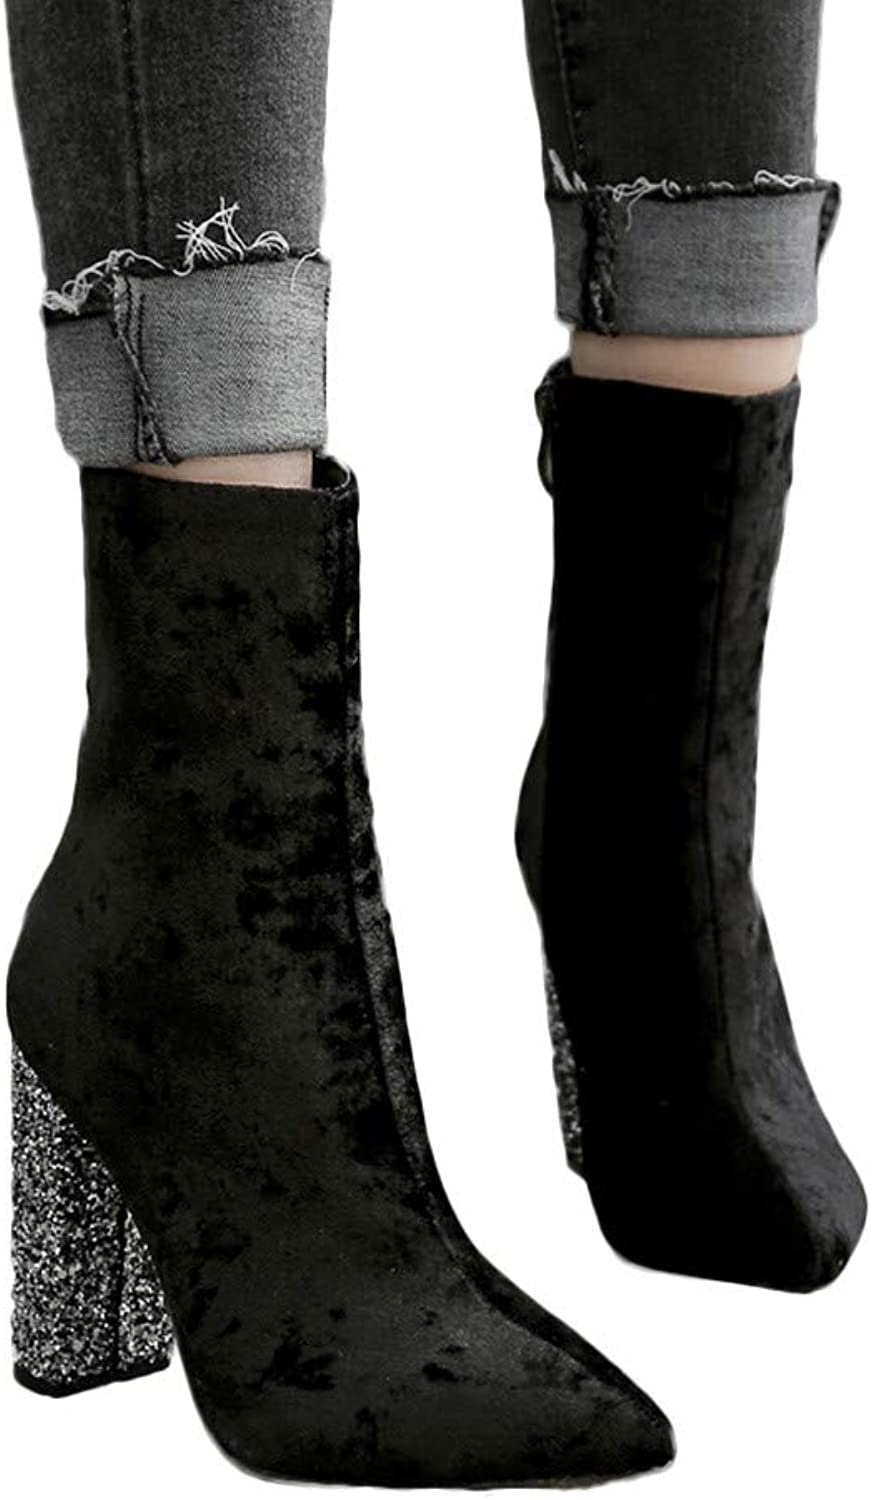 Women's Fashion Business Work High Heels, Esharing Shiny Thick heel shoes Pointed Toe Zipper Martin Boots